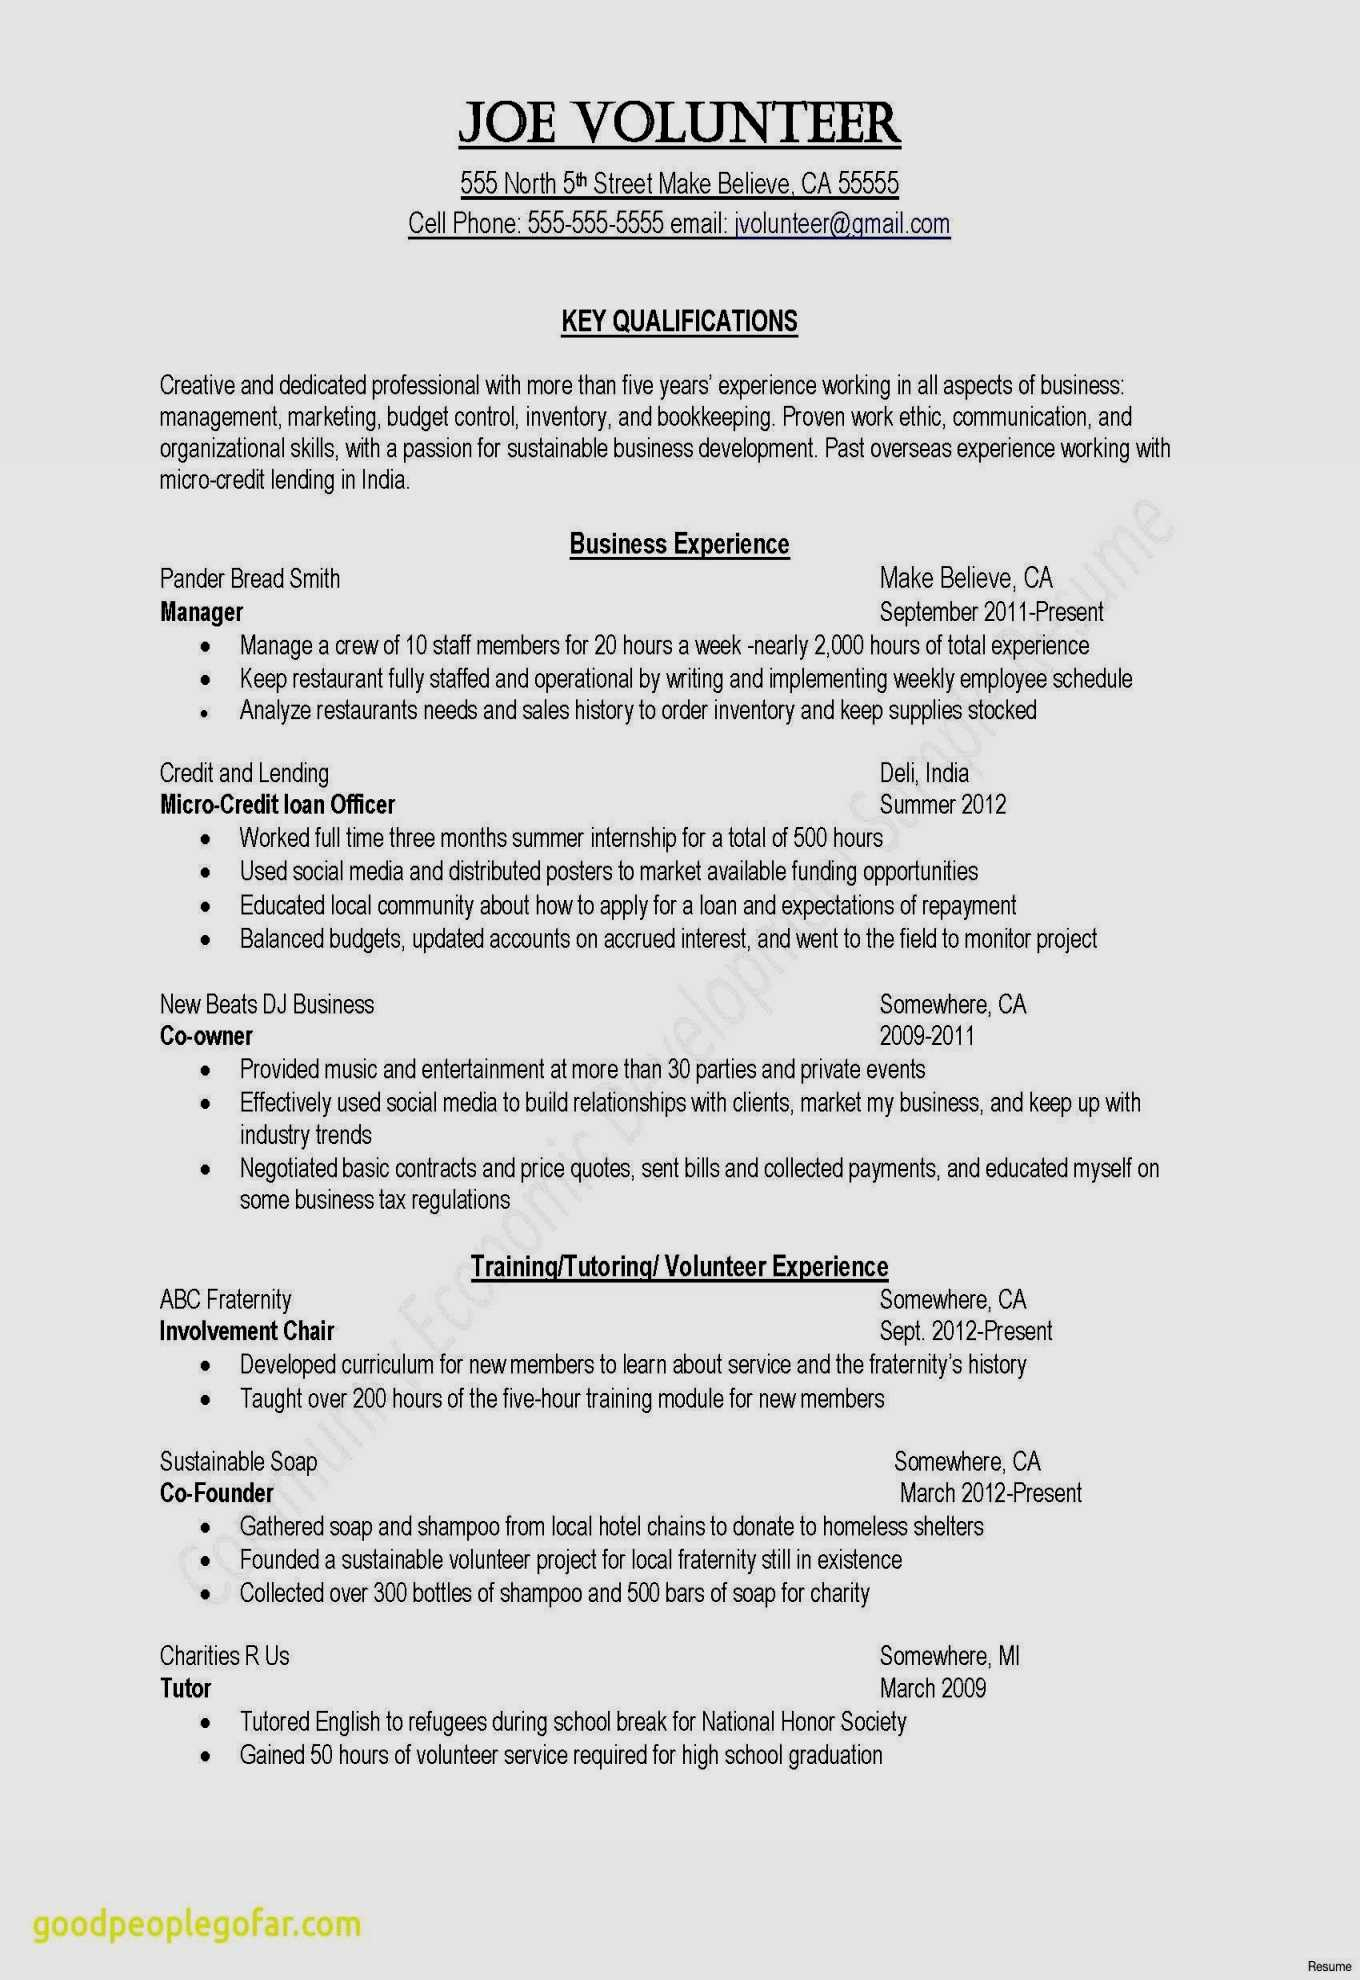 Mba Resume Template - 20 Fresh Resume Template Professional Free Resume Templates